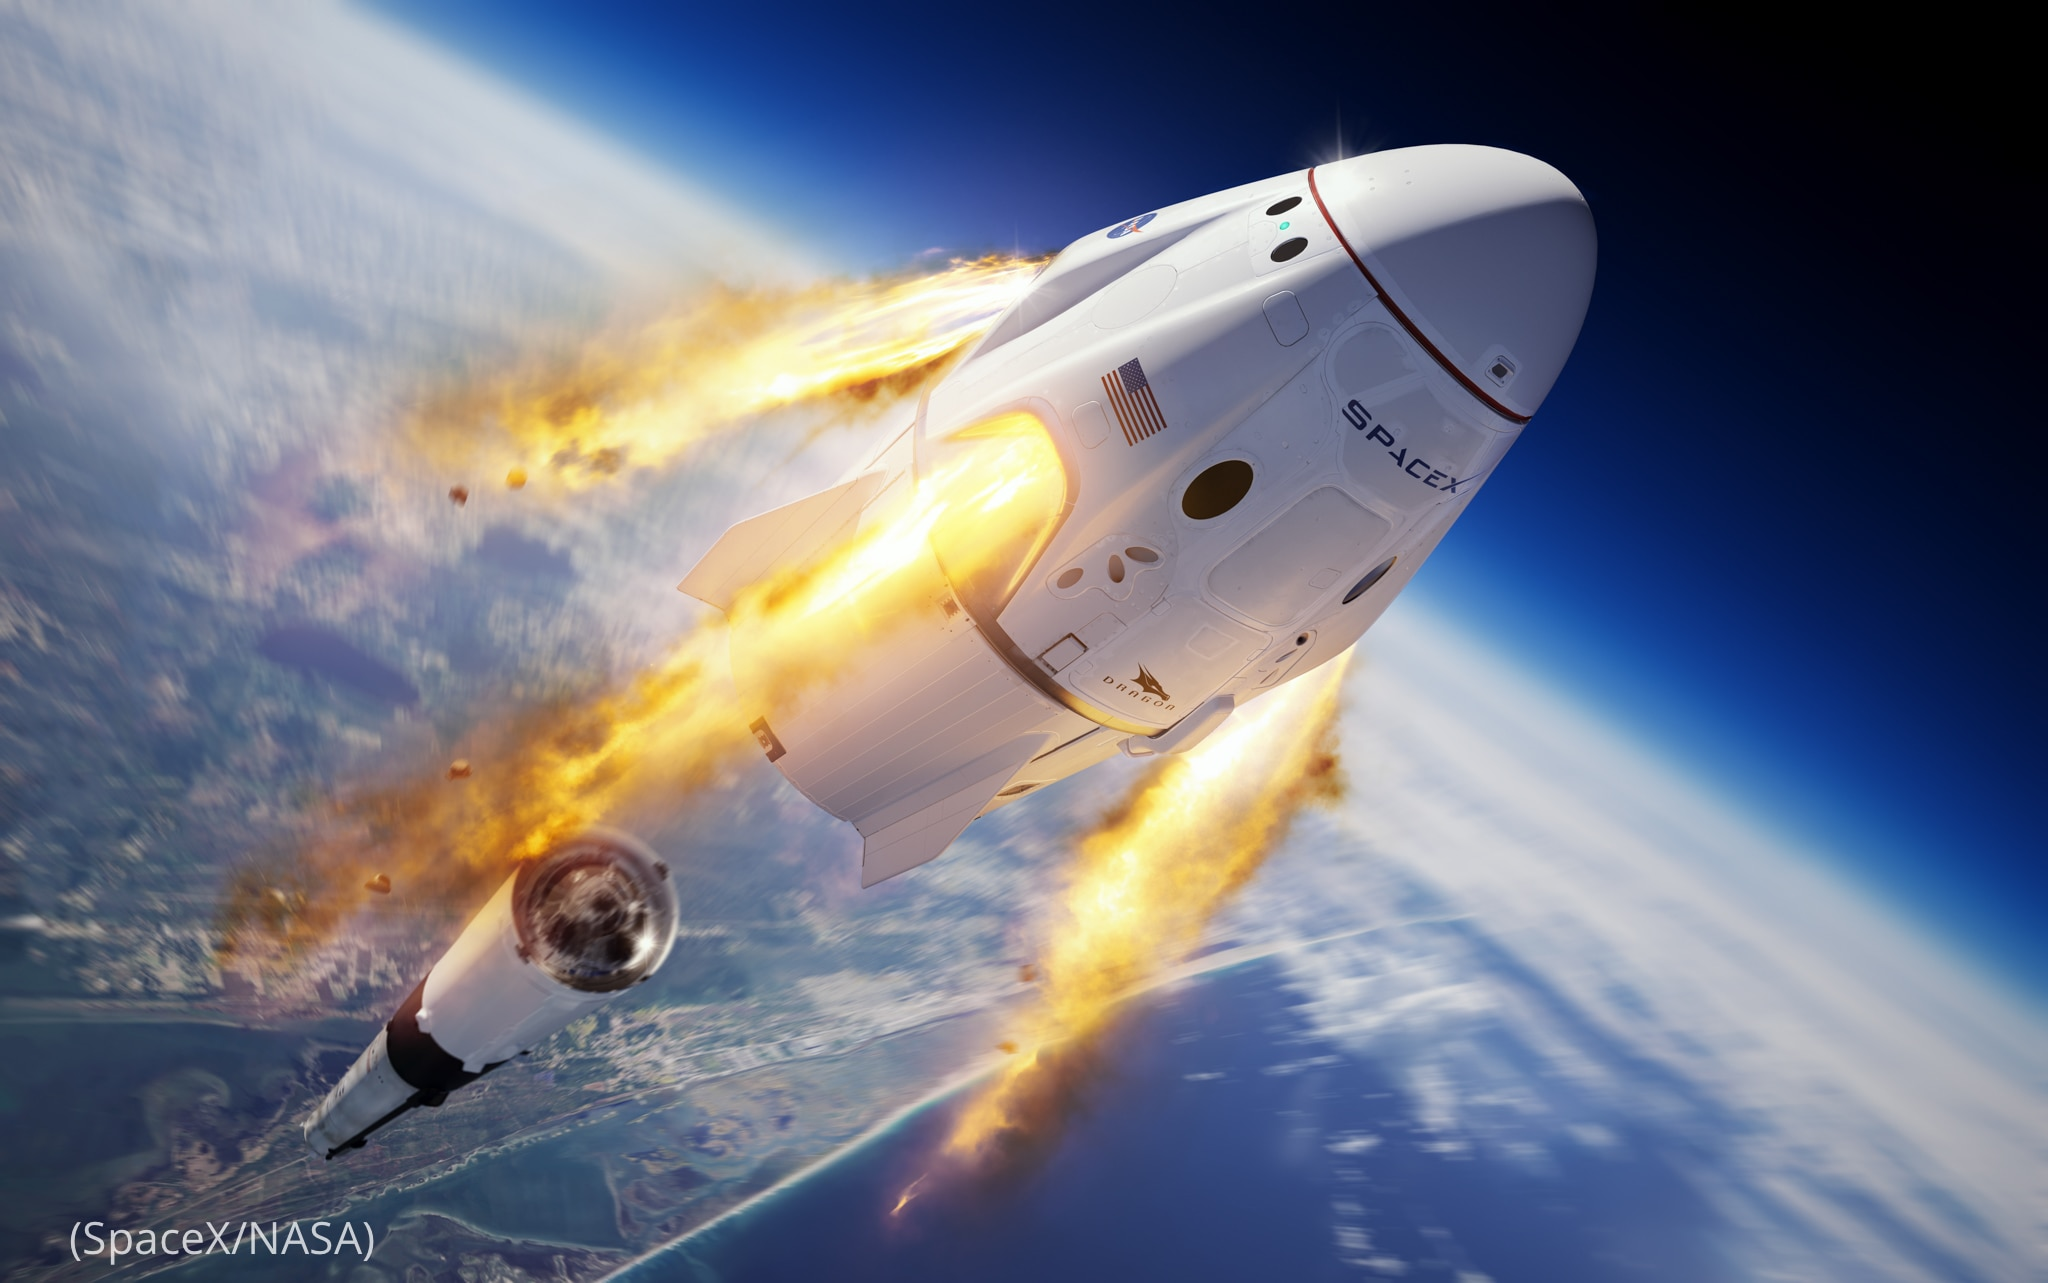 Illustration showing SpaceX Crew Dragon spacecraft separating from Falcon 9 rocket in space (SpaceX/NASA)